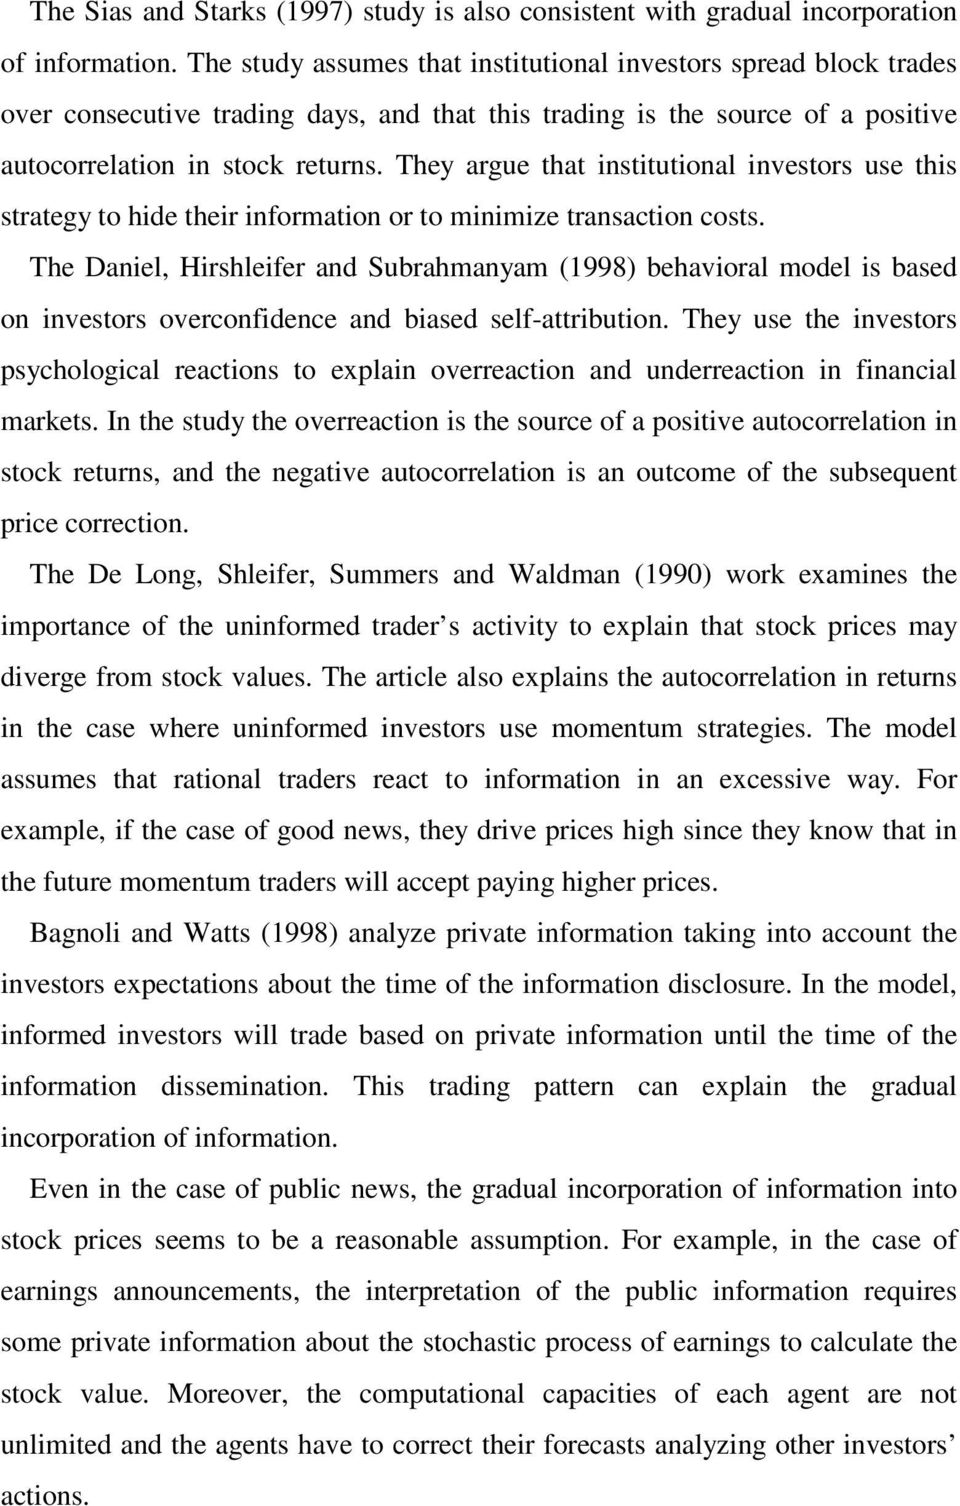 hey argue that institutional investors use this strategy to hide their information or to minimize transaction costs.